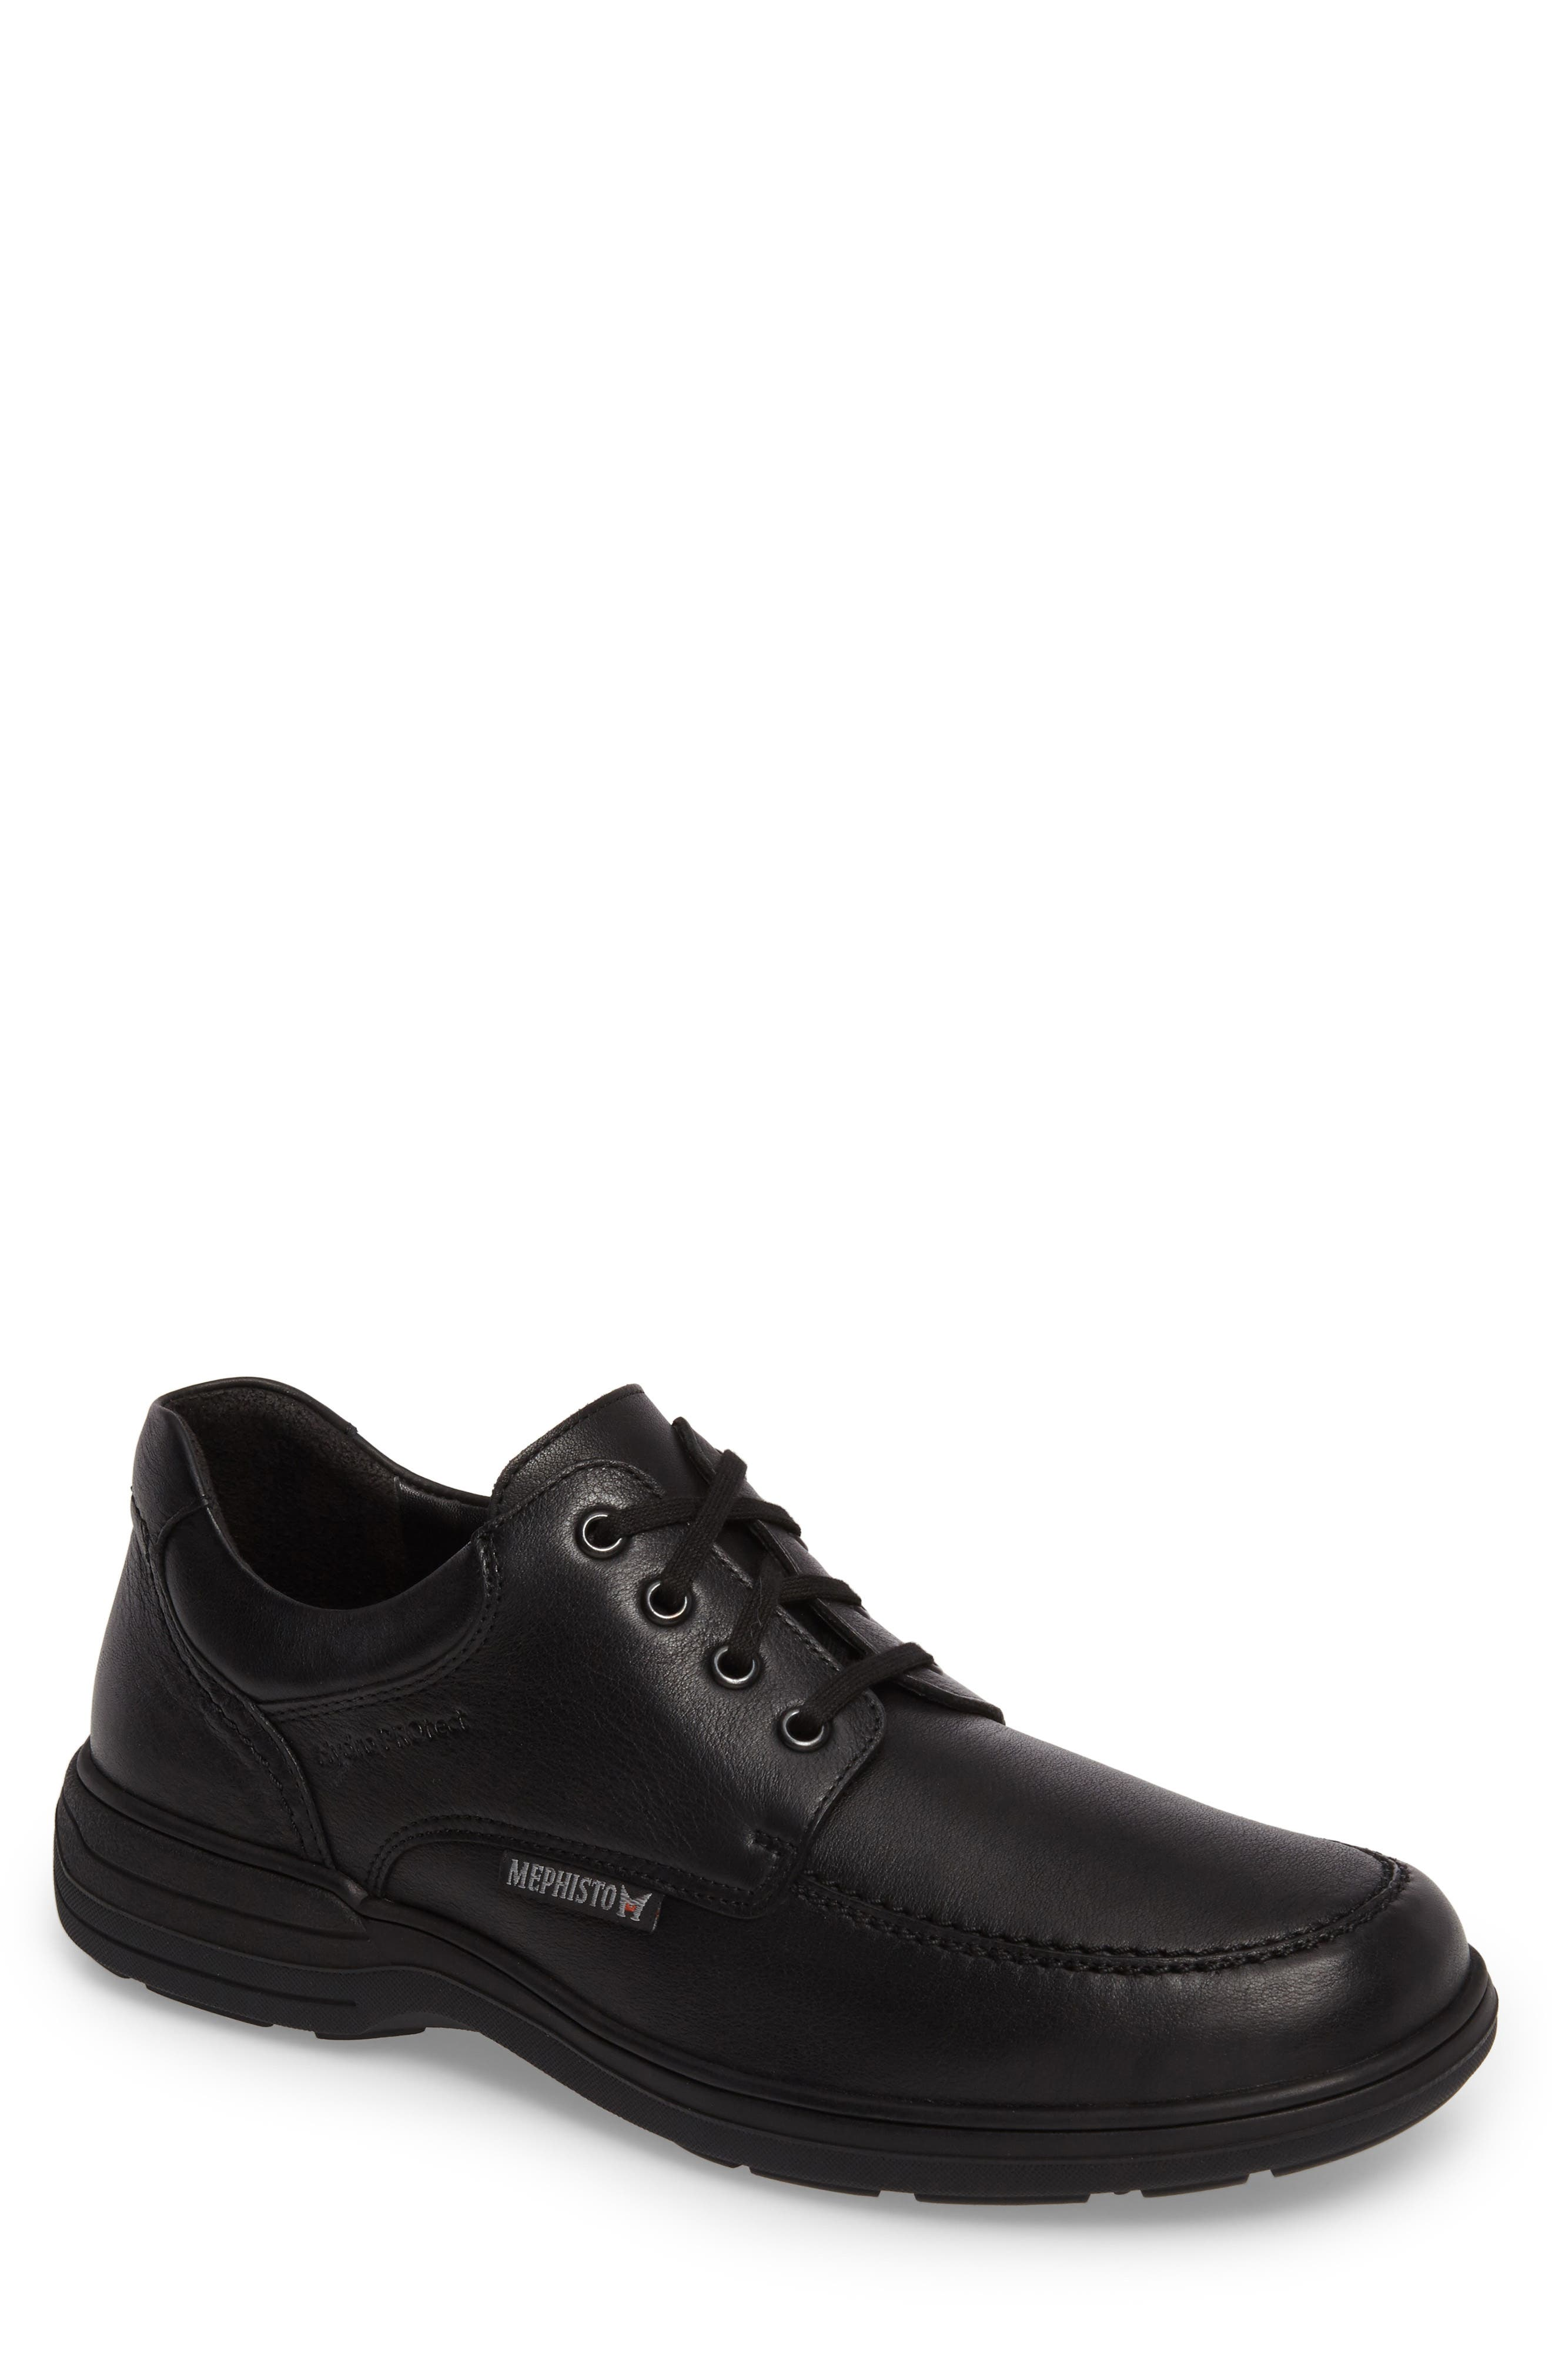 MEPHISTO Douk HydroProtect Waterproof Moc Toe Derby, Main, color, BLACK CALFSKIN